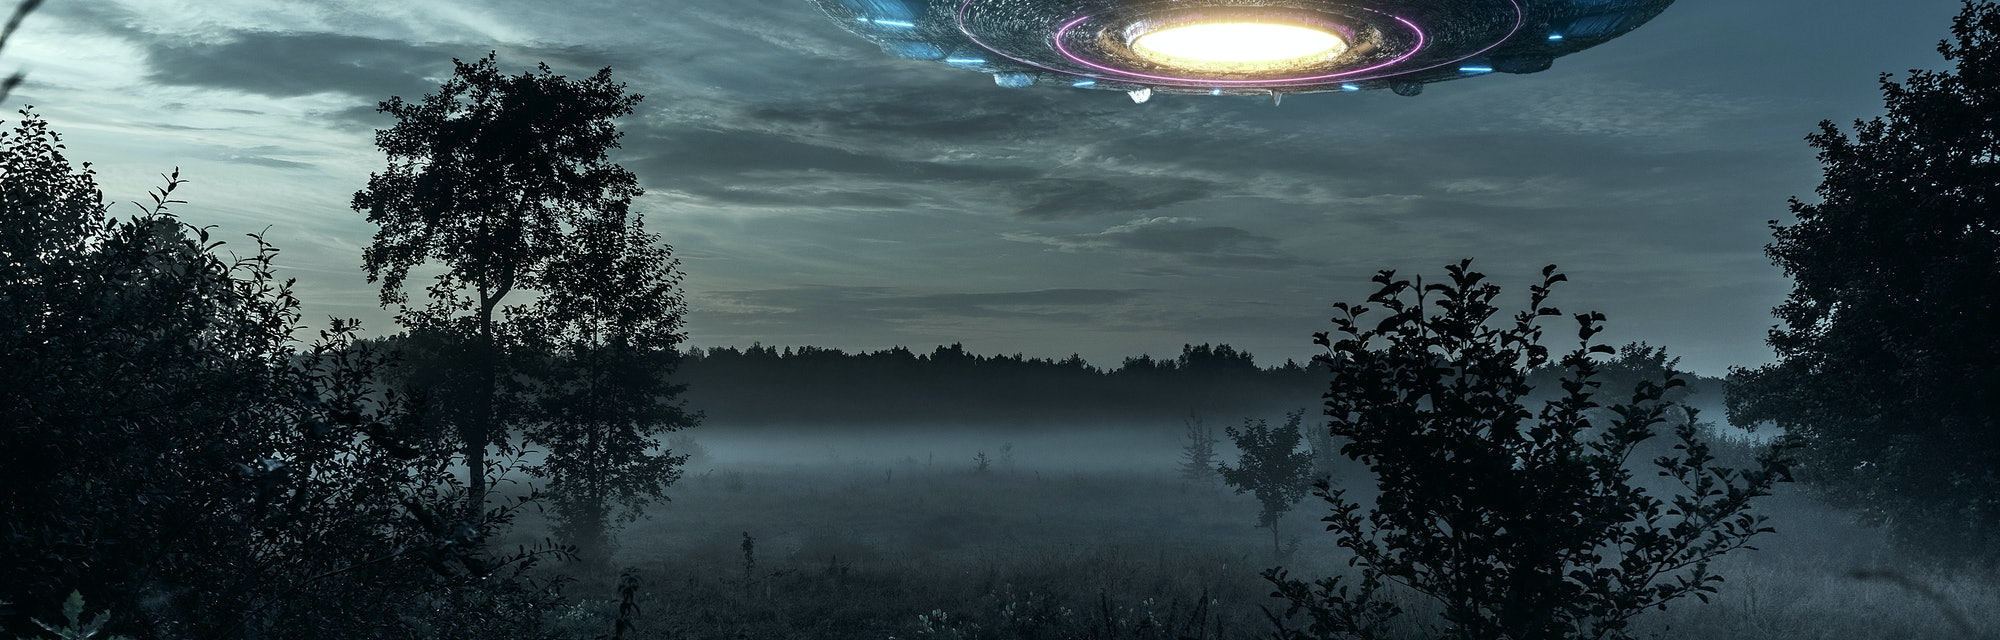 UFO, an alien plate hovering over the field, hovering motionless in the air. Unidentified flying obj...